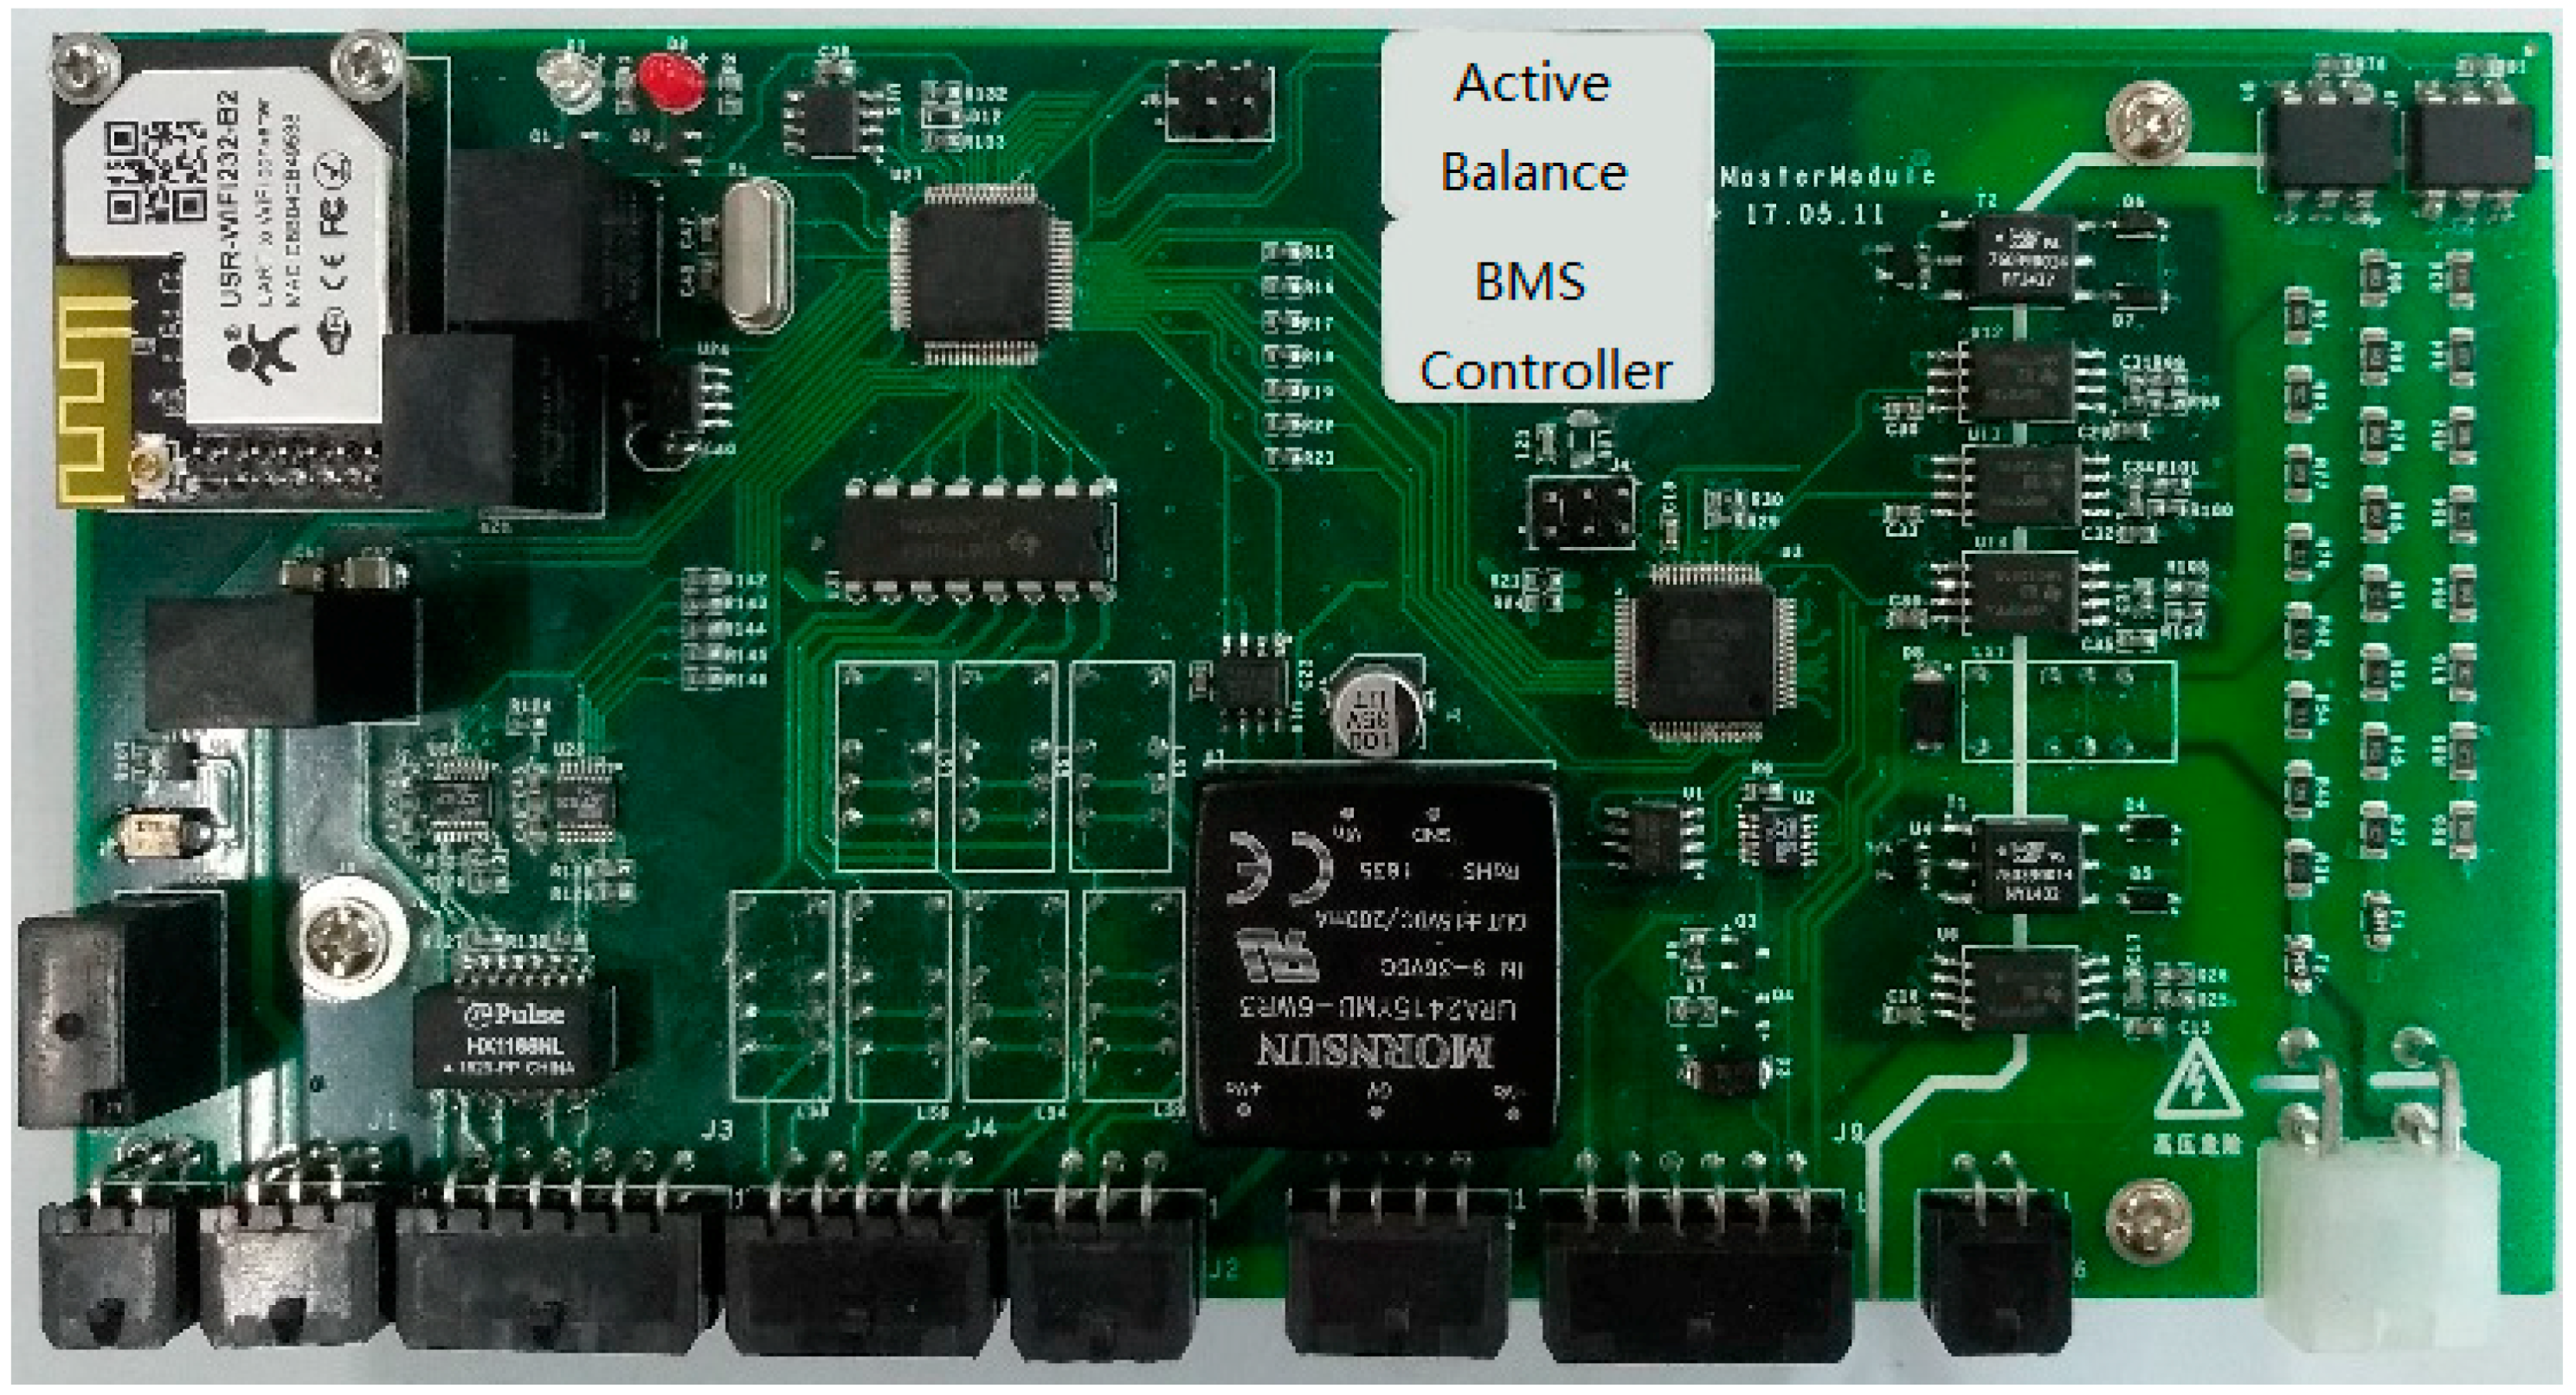 Energies Free Full Text A High Efficiency Bidirectional Active Circuit Converts Pwm Fan Drive To Linear And Reduces Acoustic Noise 11 03220 G013